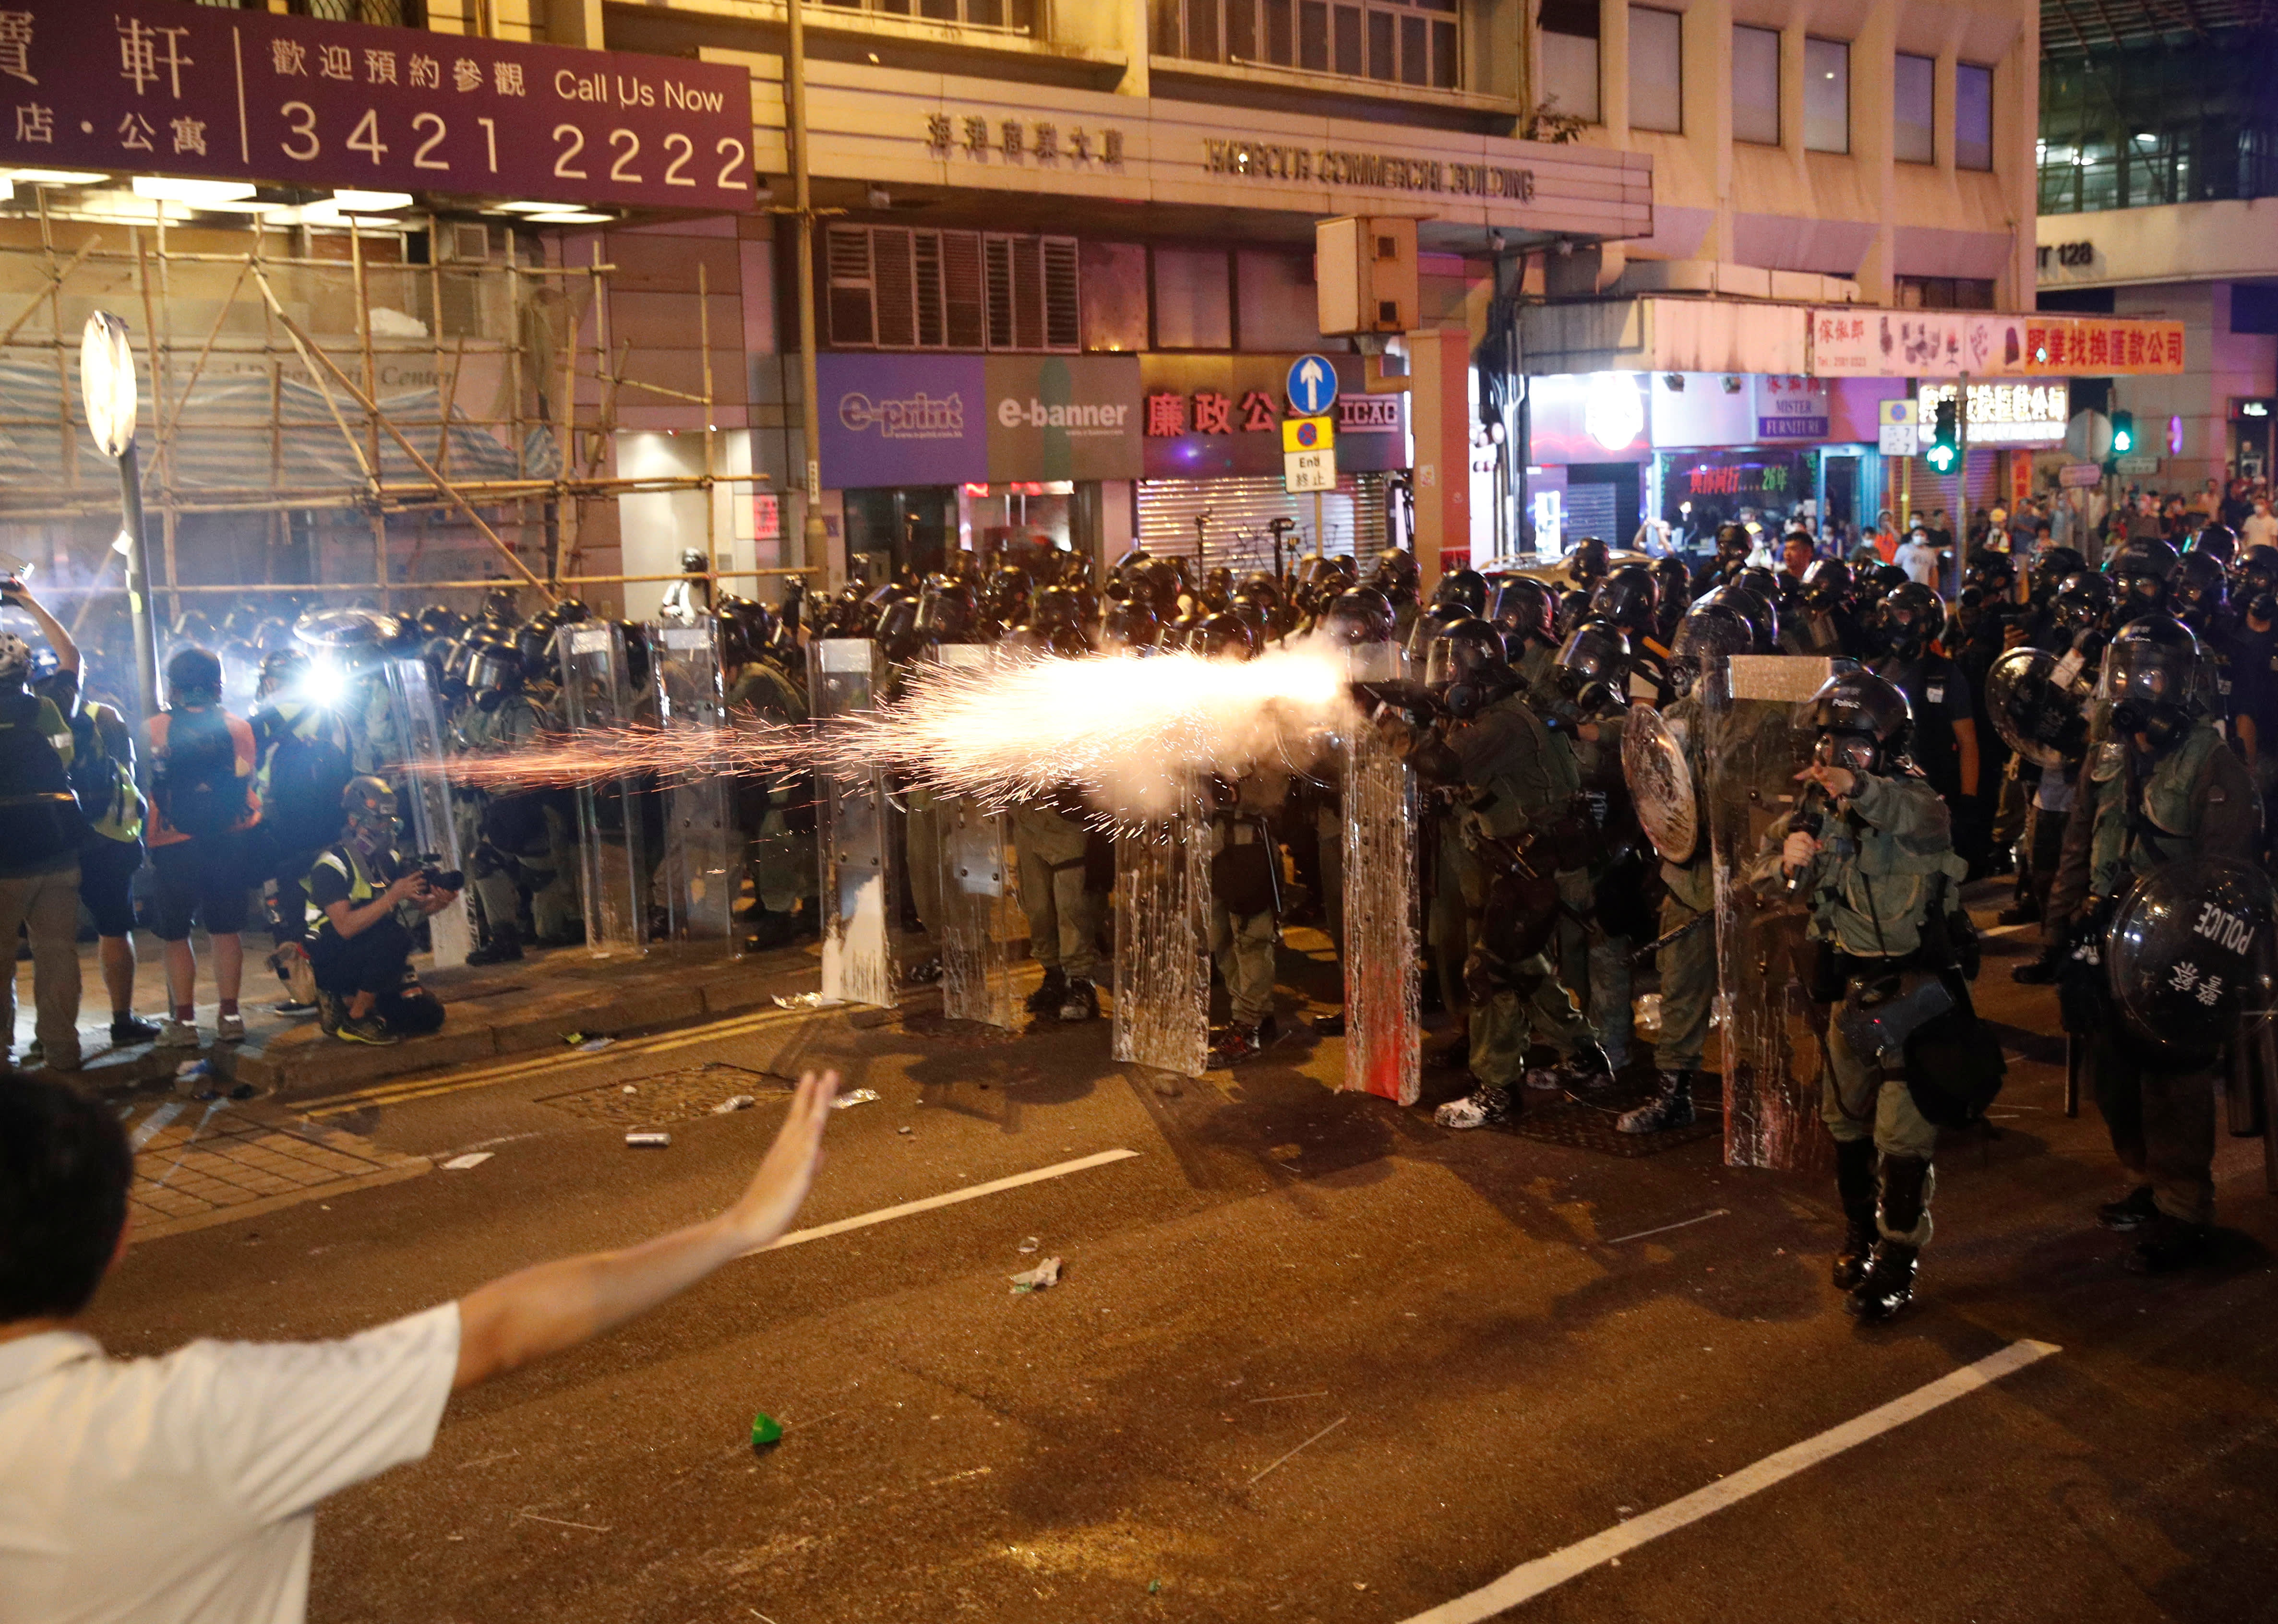 Violence is escalating in Hong Kong. Here are three possible outcomes